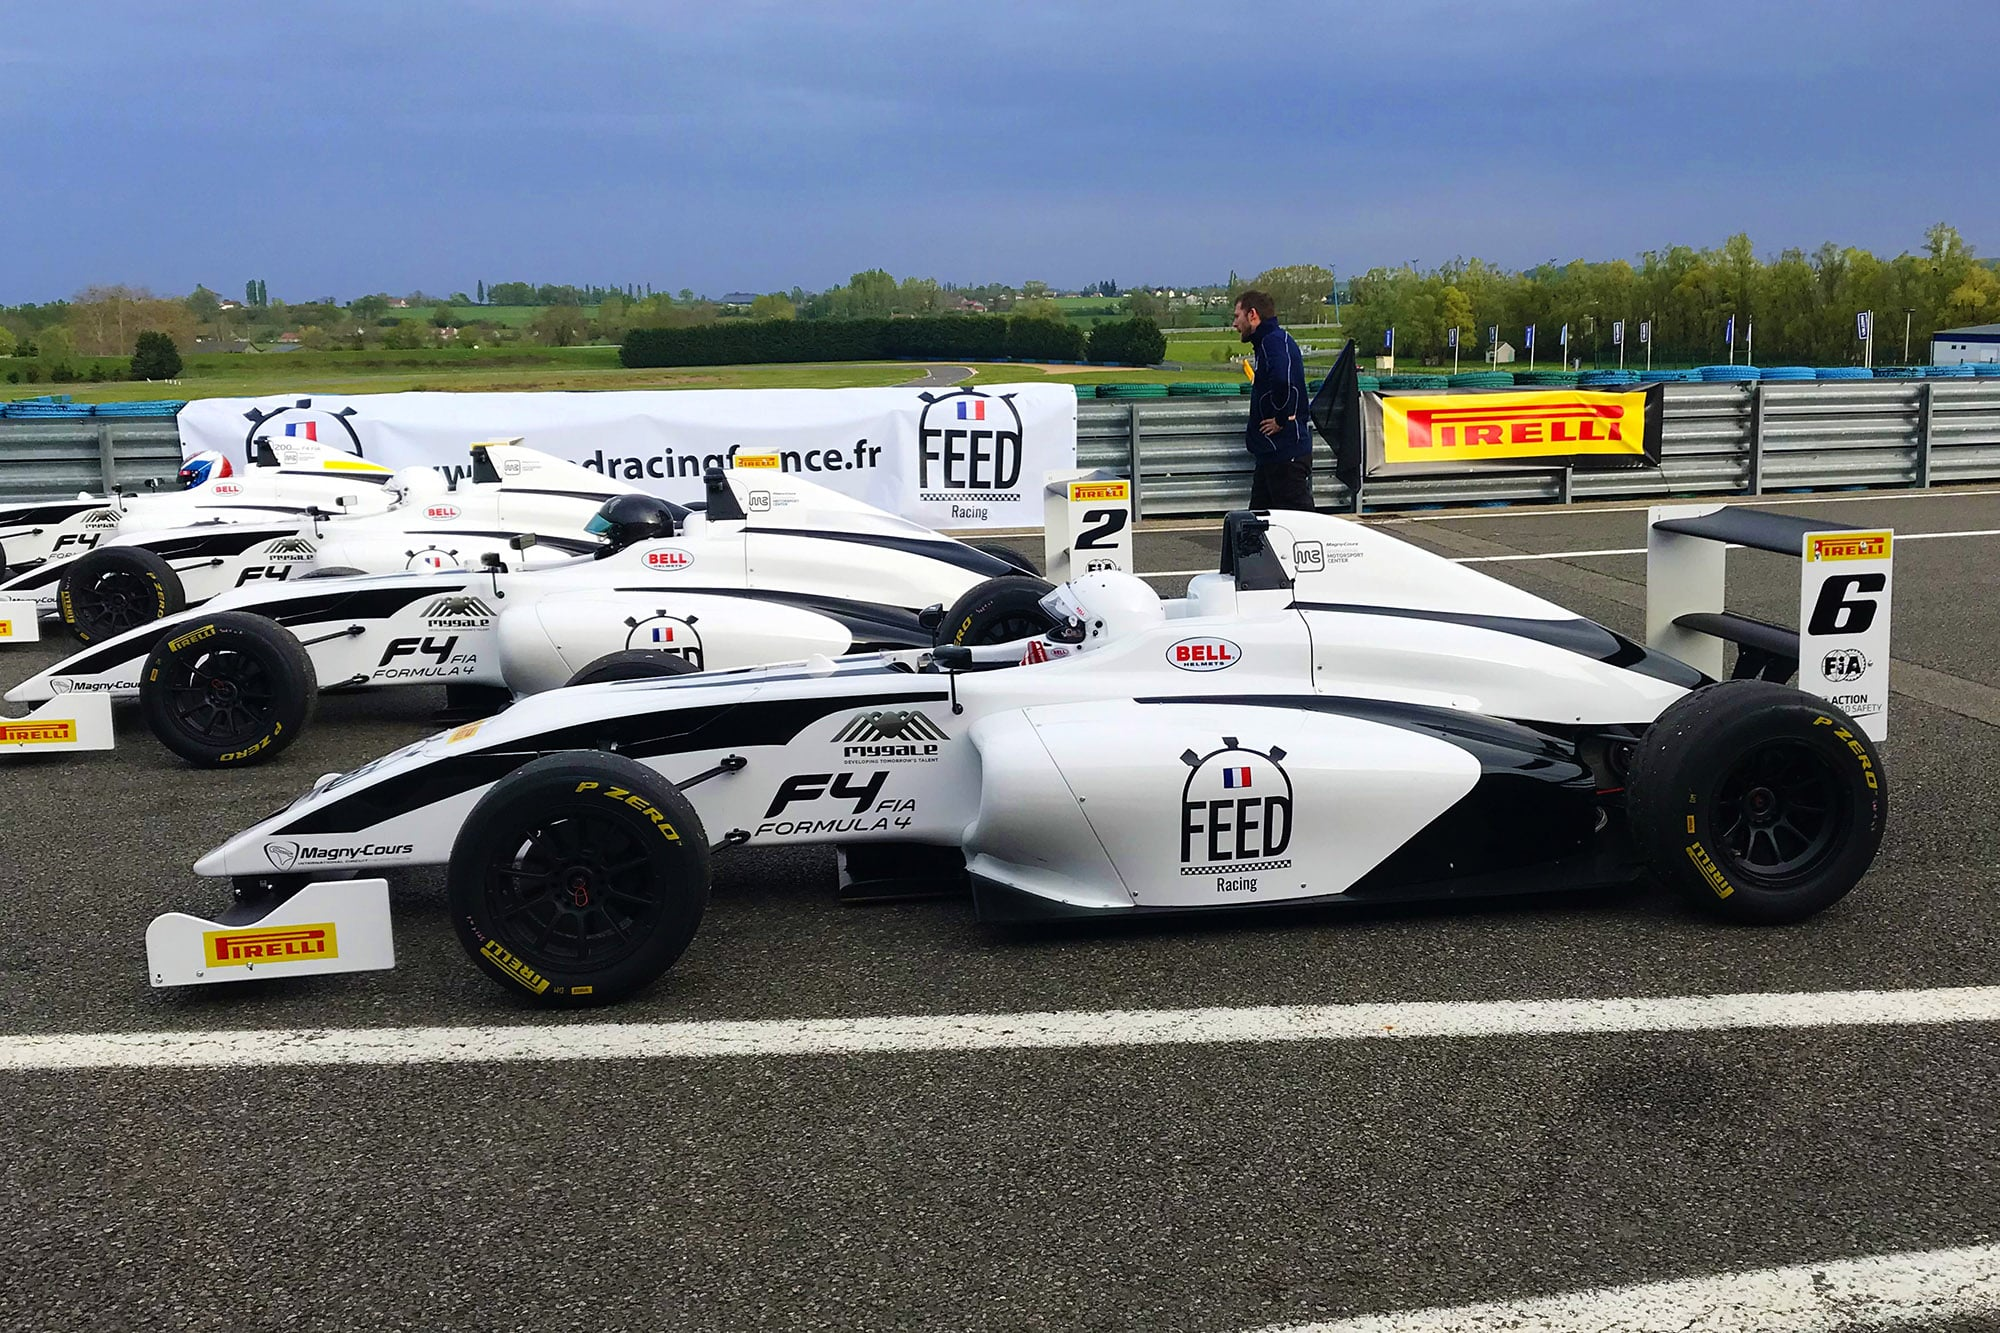 Single-seat F4 FEED RACING in pitlane of Magny-Cours